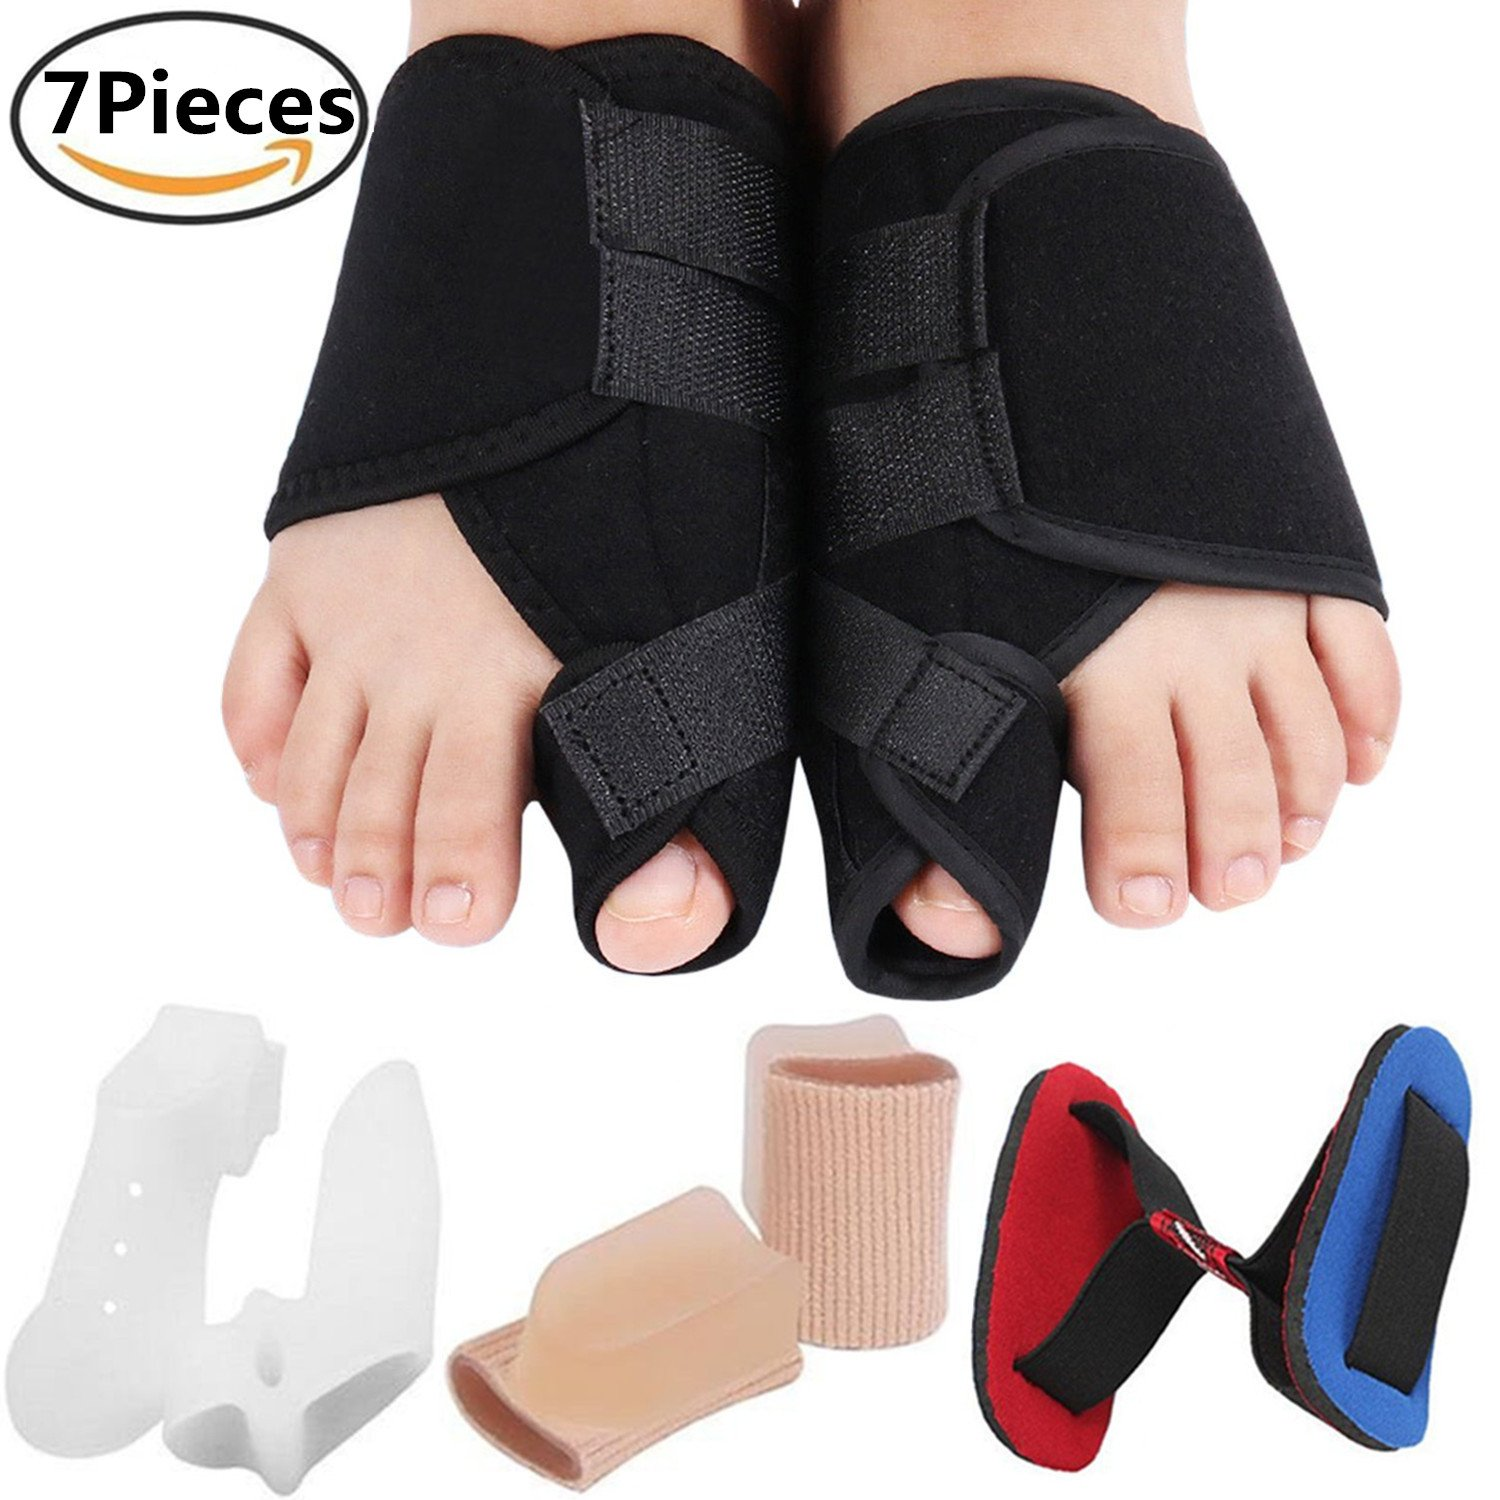 Bunion Corrector Bunion Relief Kit, Bunion Splint Toe Straightener Corrector for Hallux Valgus, Big Toe Joint, Hammer Toes, Splint Aid Surgery Treatment for Women and Men (Black Splints)